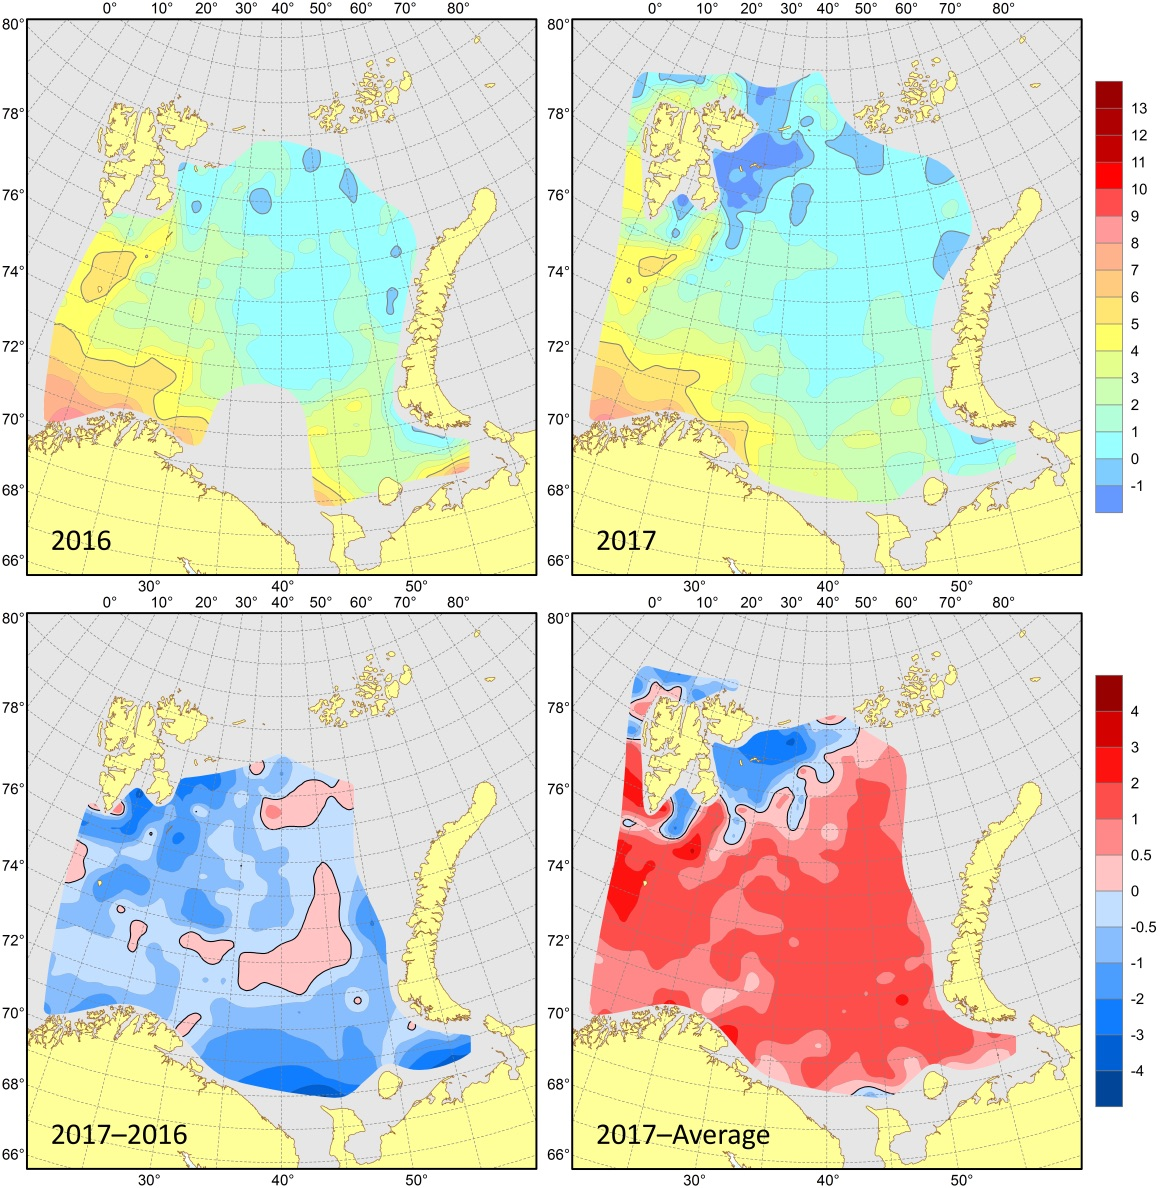 Figure 3.1.11. Bottom temperatures (°C) in August–October 2016 (upper left) and 2017 (upper right), their differences between 2017 and 2016 (lower left, °C) and anomalies in August–October 2017 (lower right, °C).